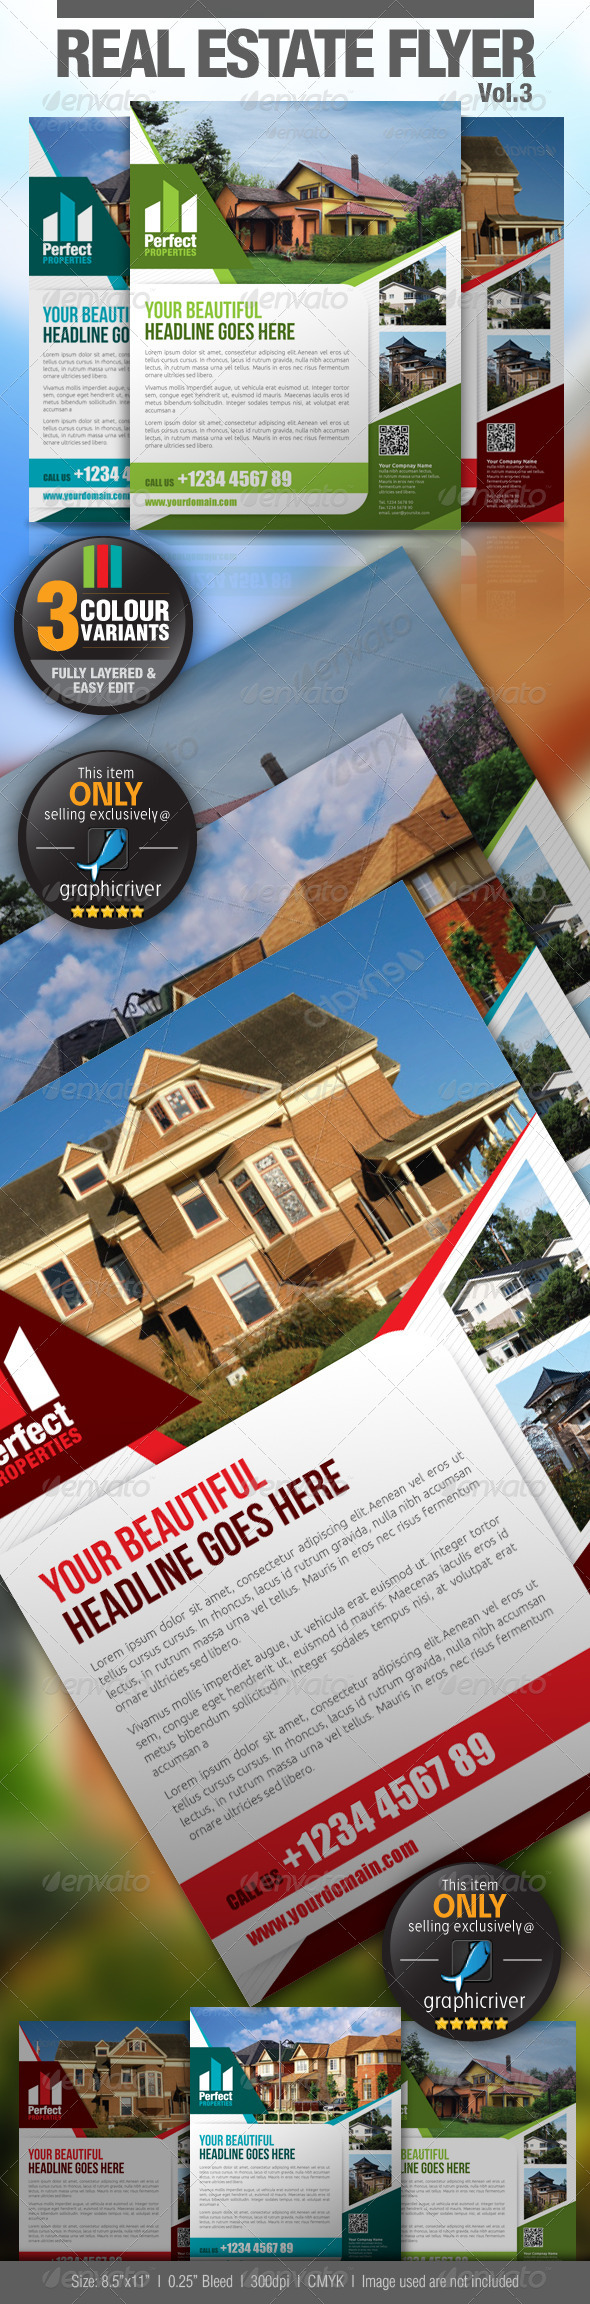 Real Estate Flyer Vol.3 - Miscellaneous Events